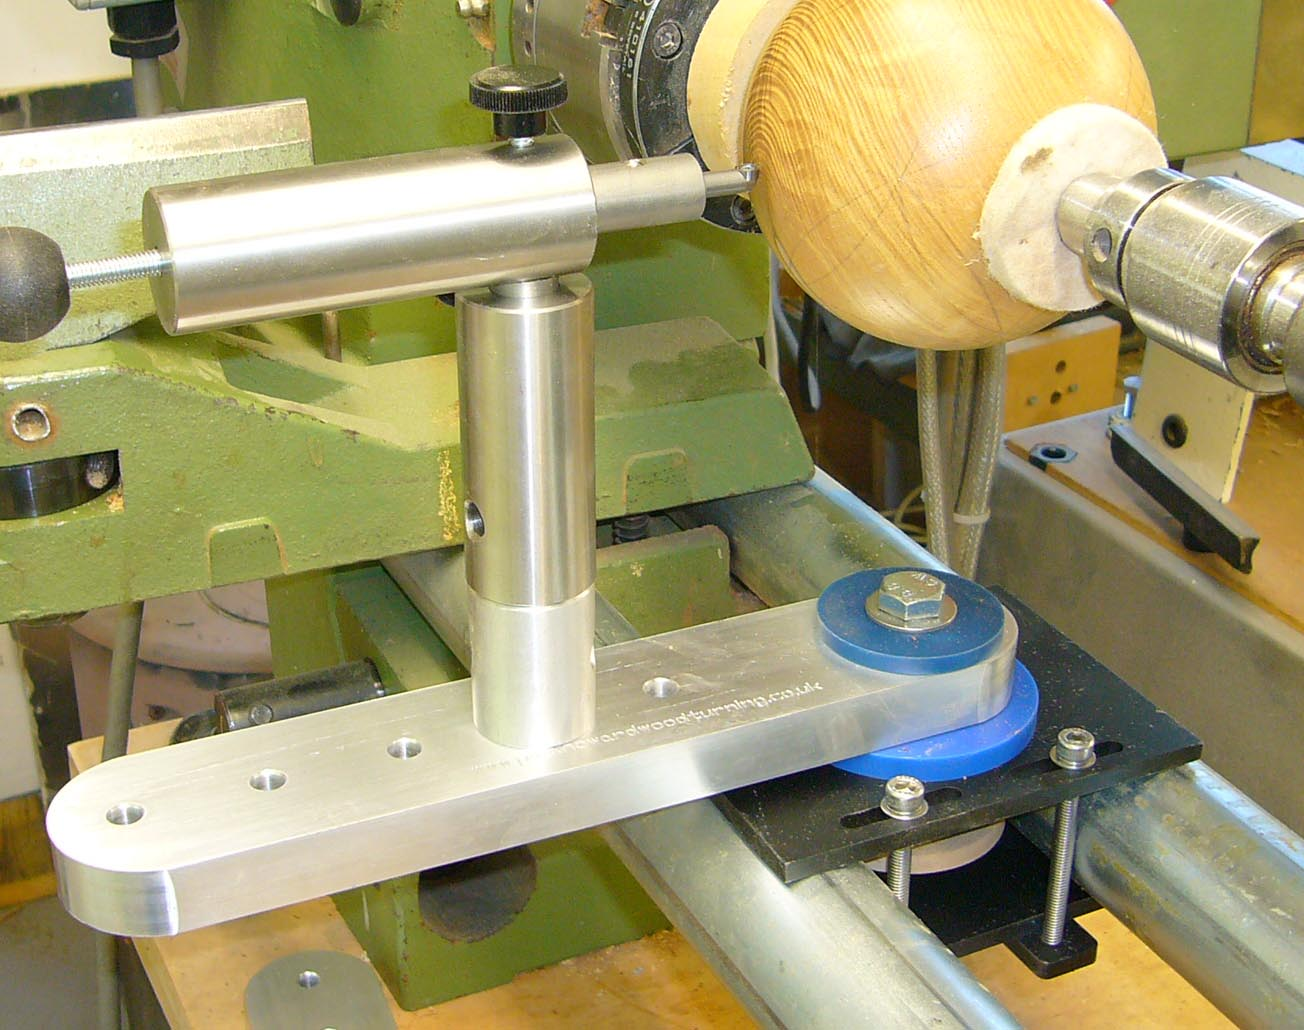 Sphere Jig Round Bed Bar Lathe